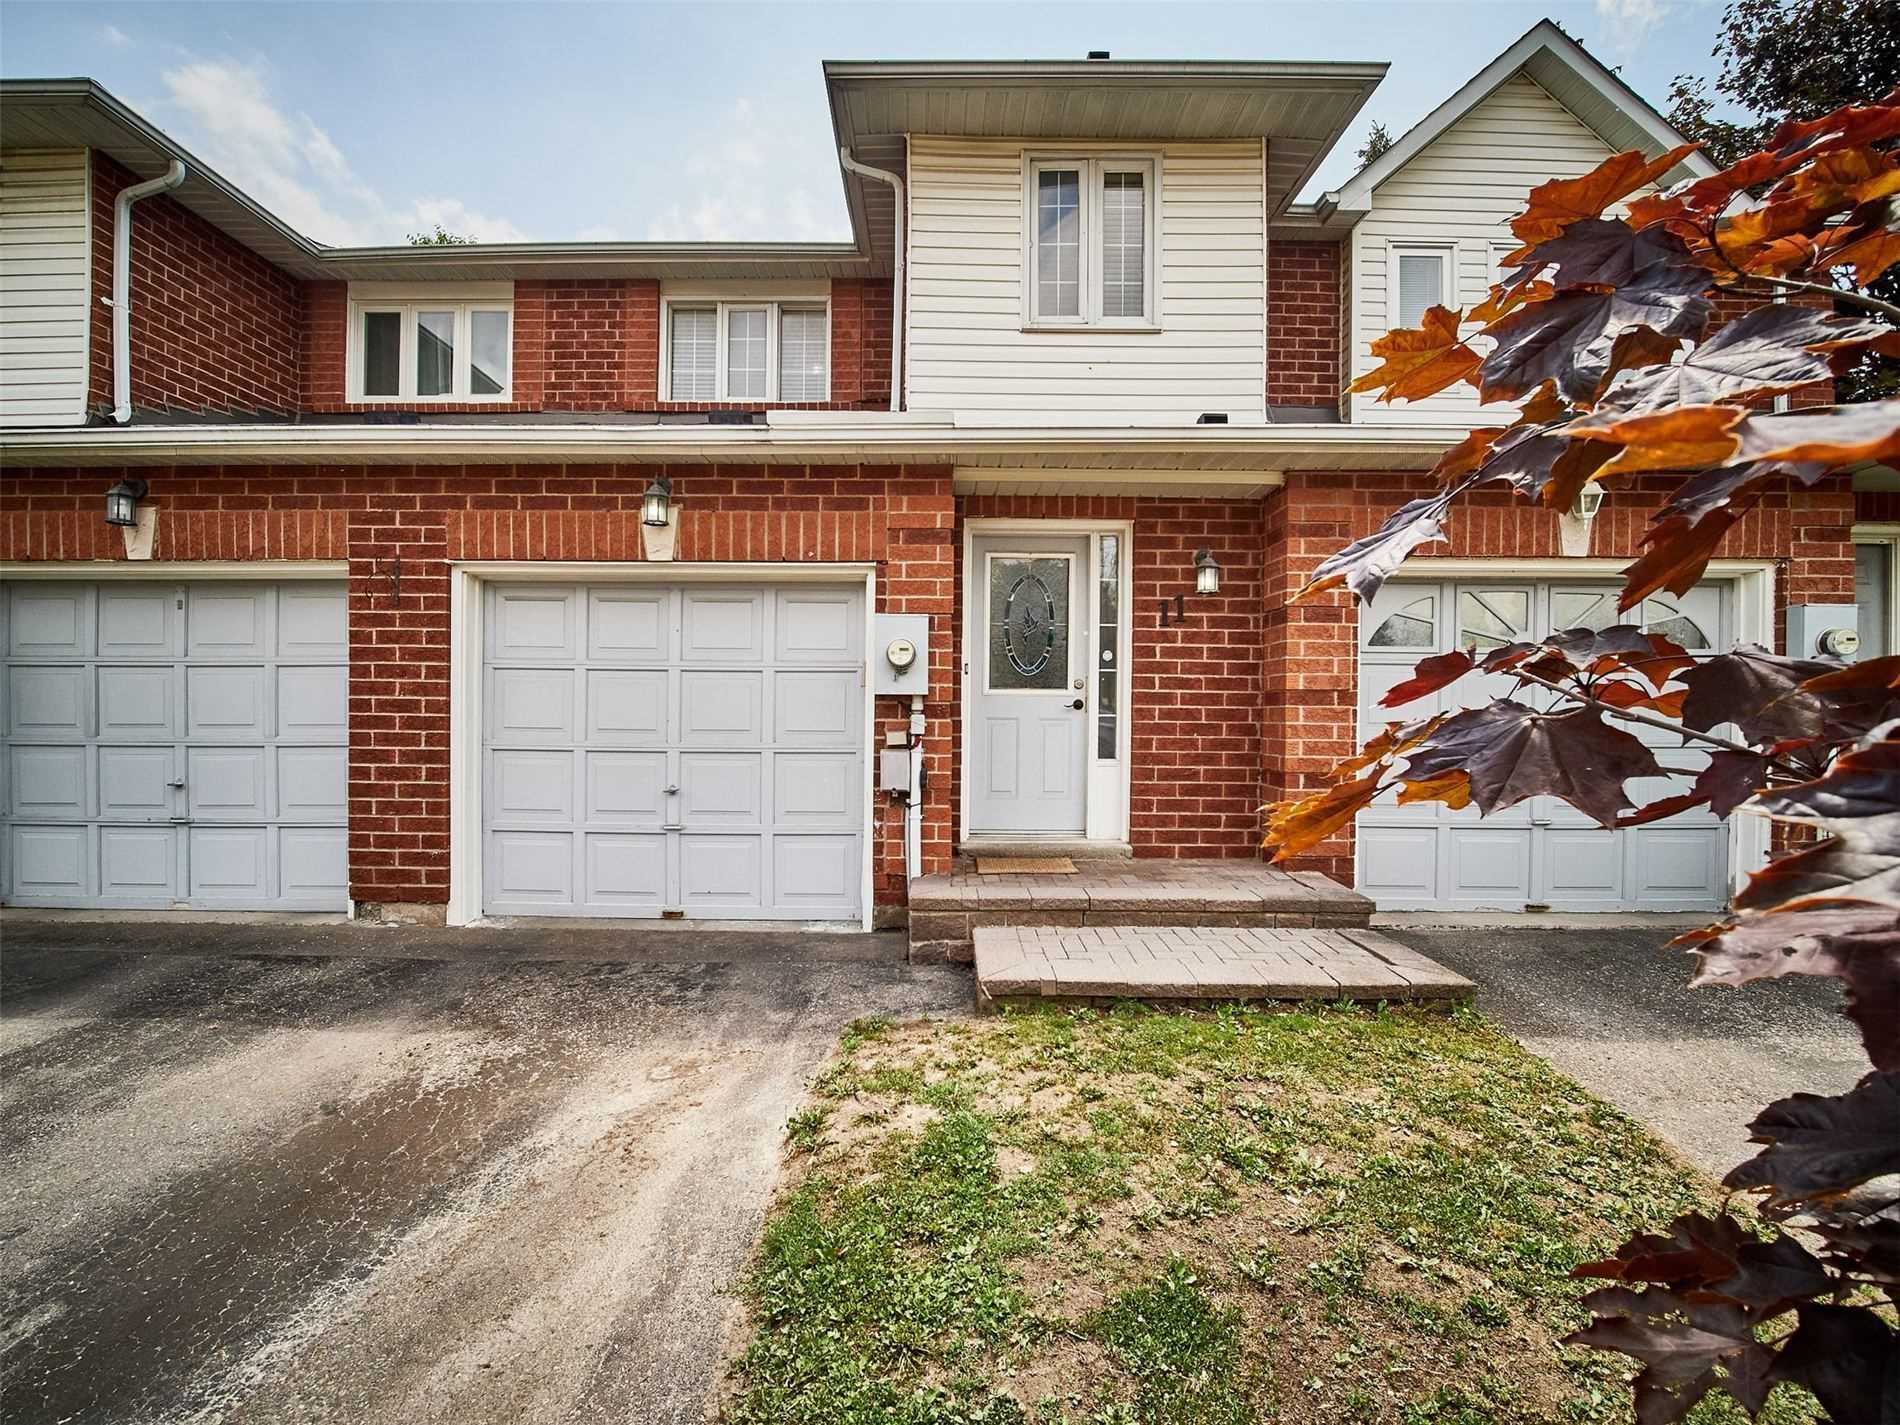 811 Wilson Rd N, unit 11 for sale in Toronto - image #1